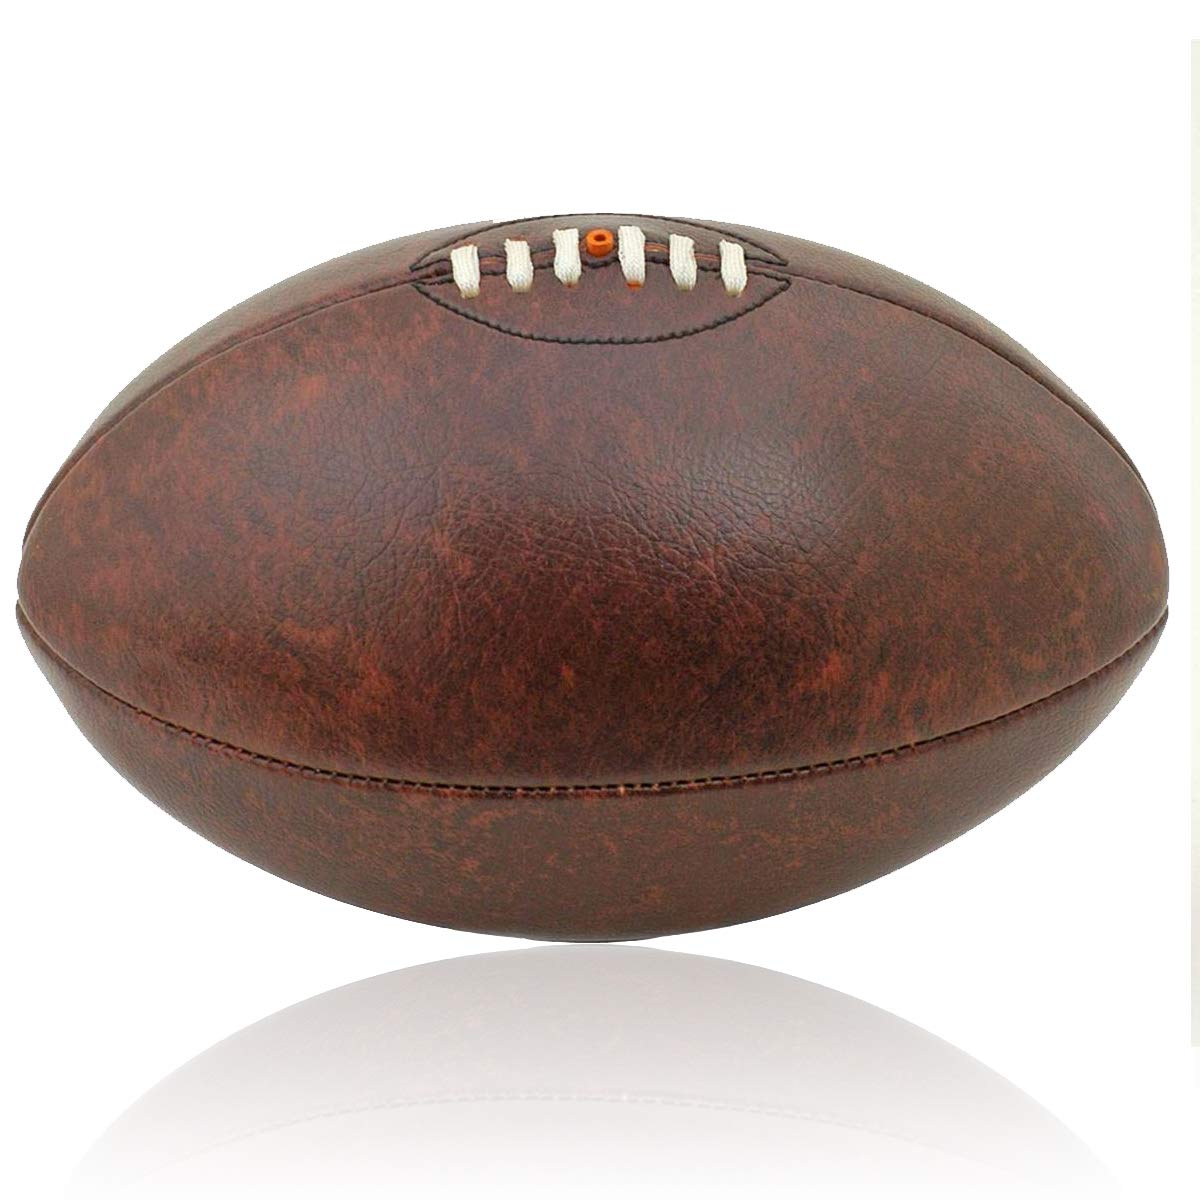 British Sports Museum Vintage Leather-Look PU Lace-up Rugby Ball